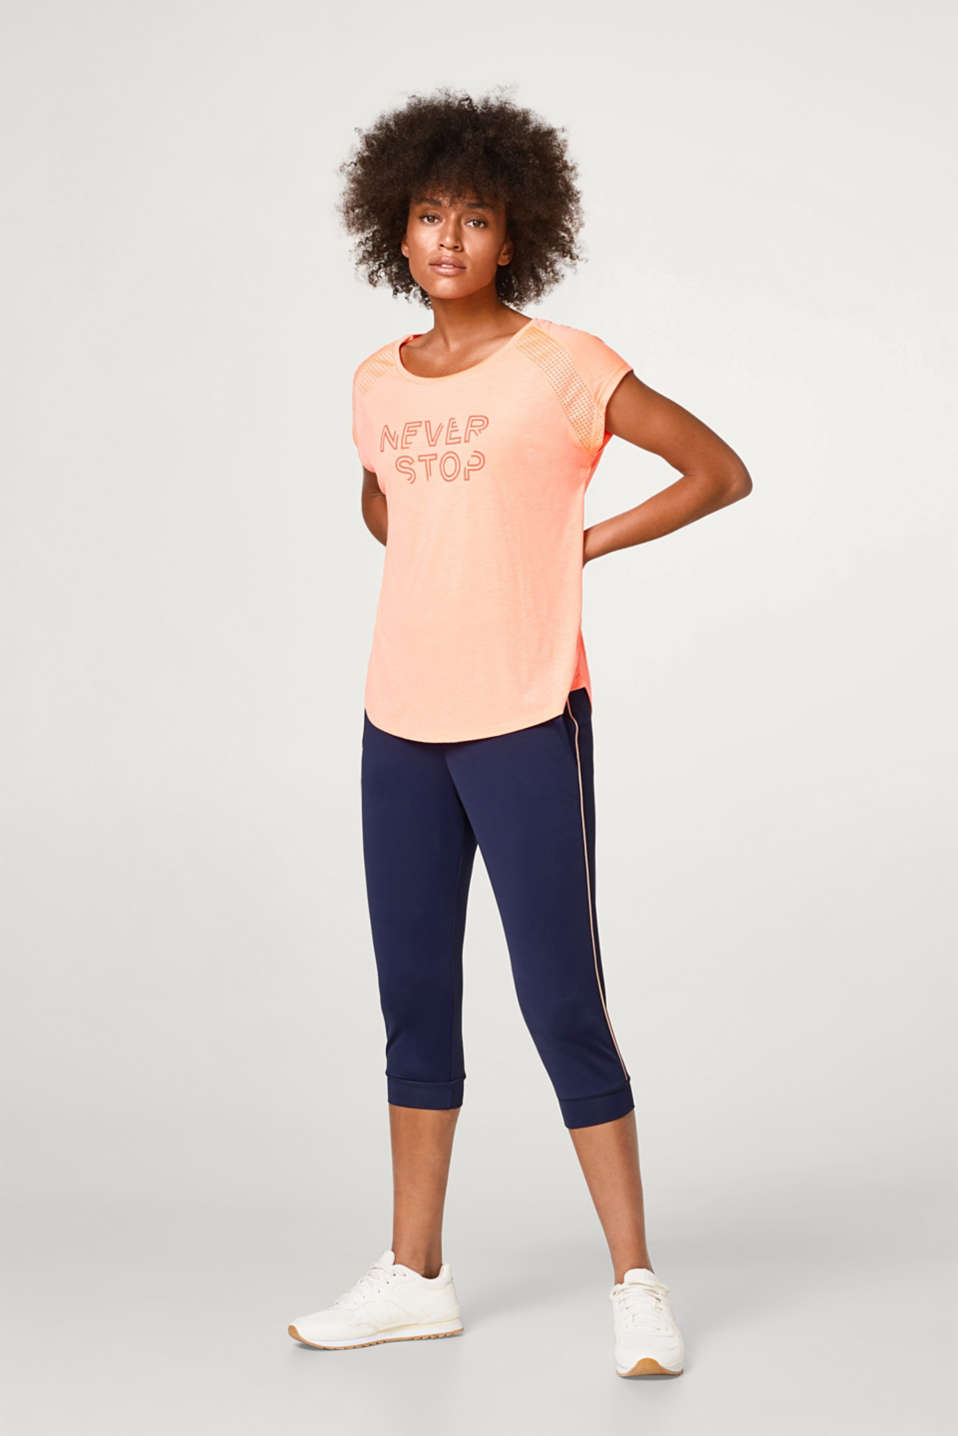 Airy T-shirt with a neon print and mesh details